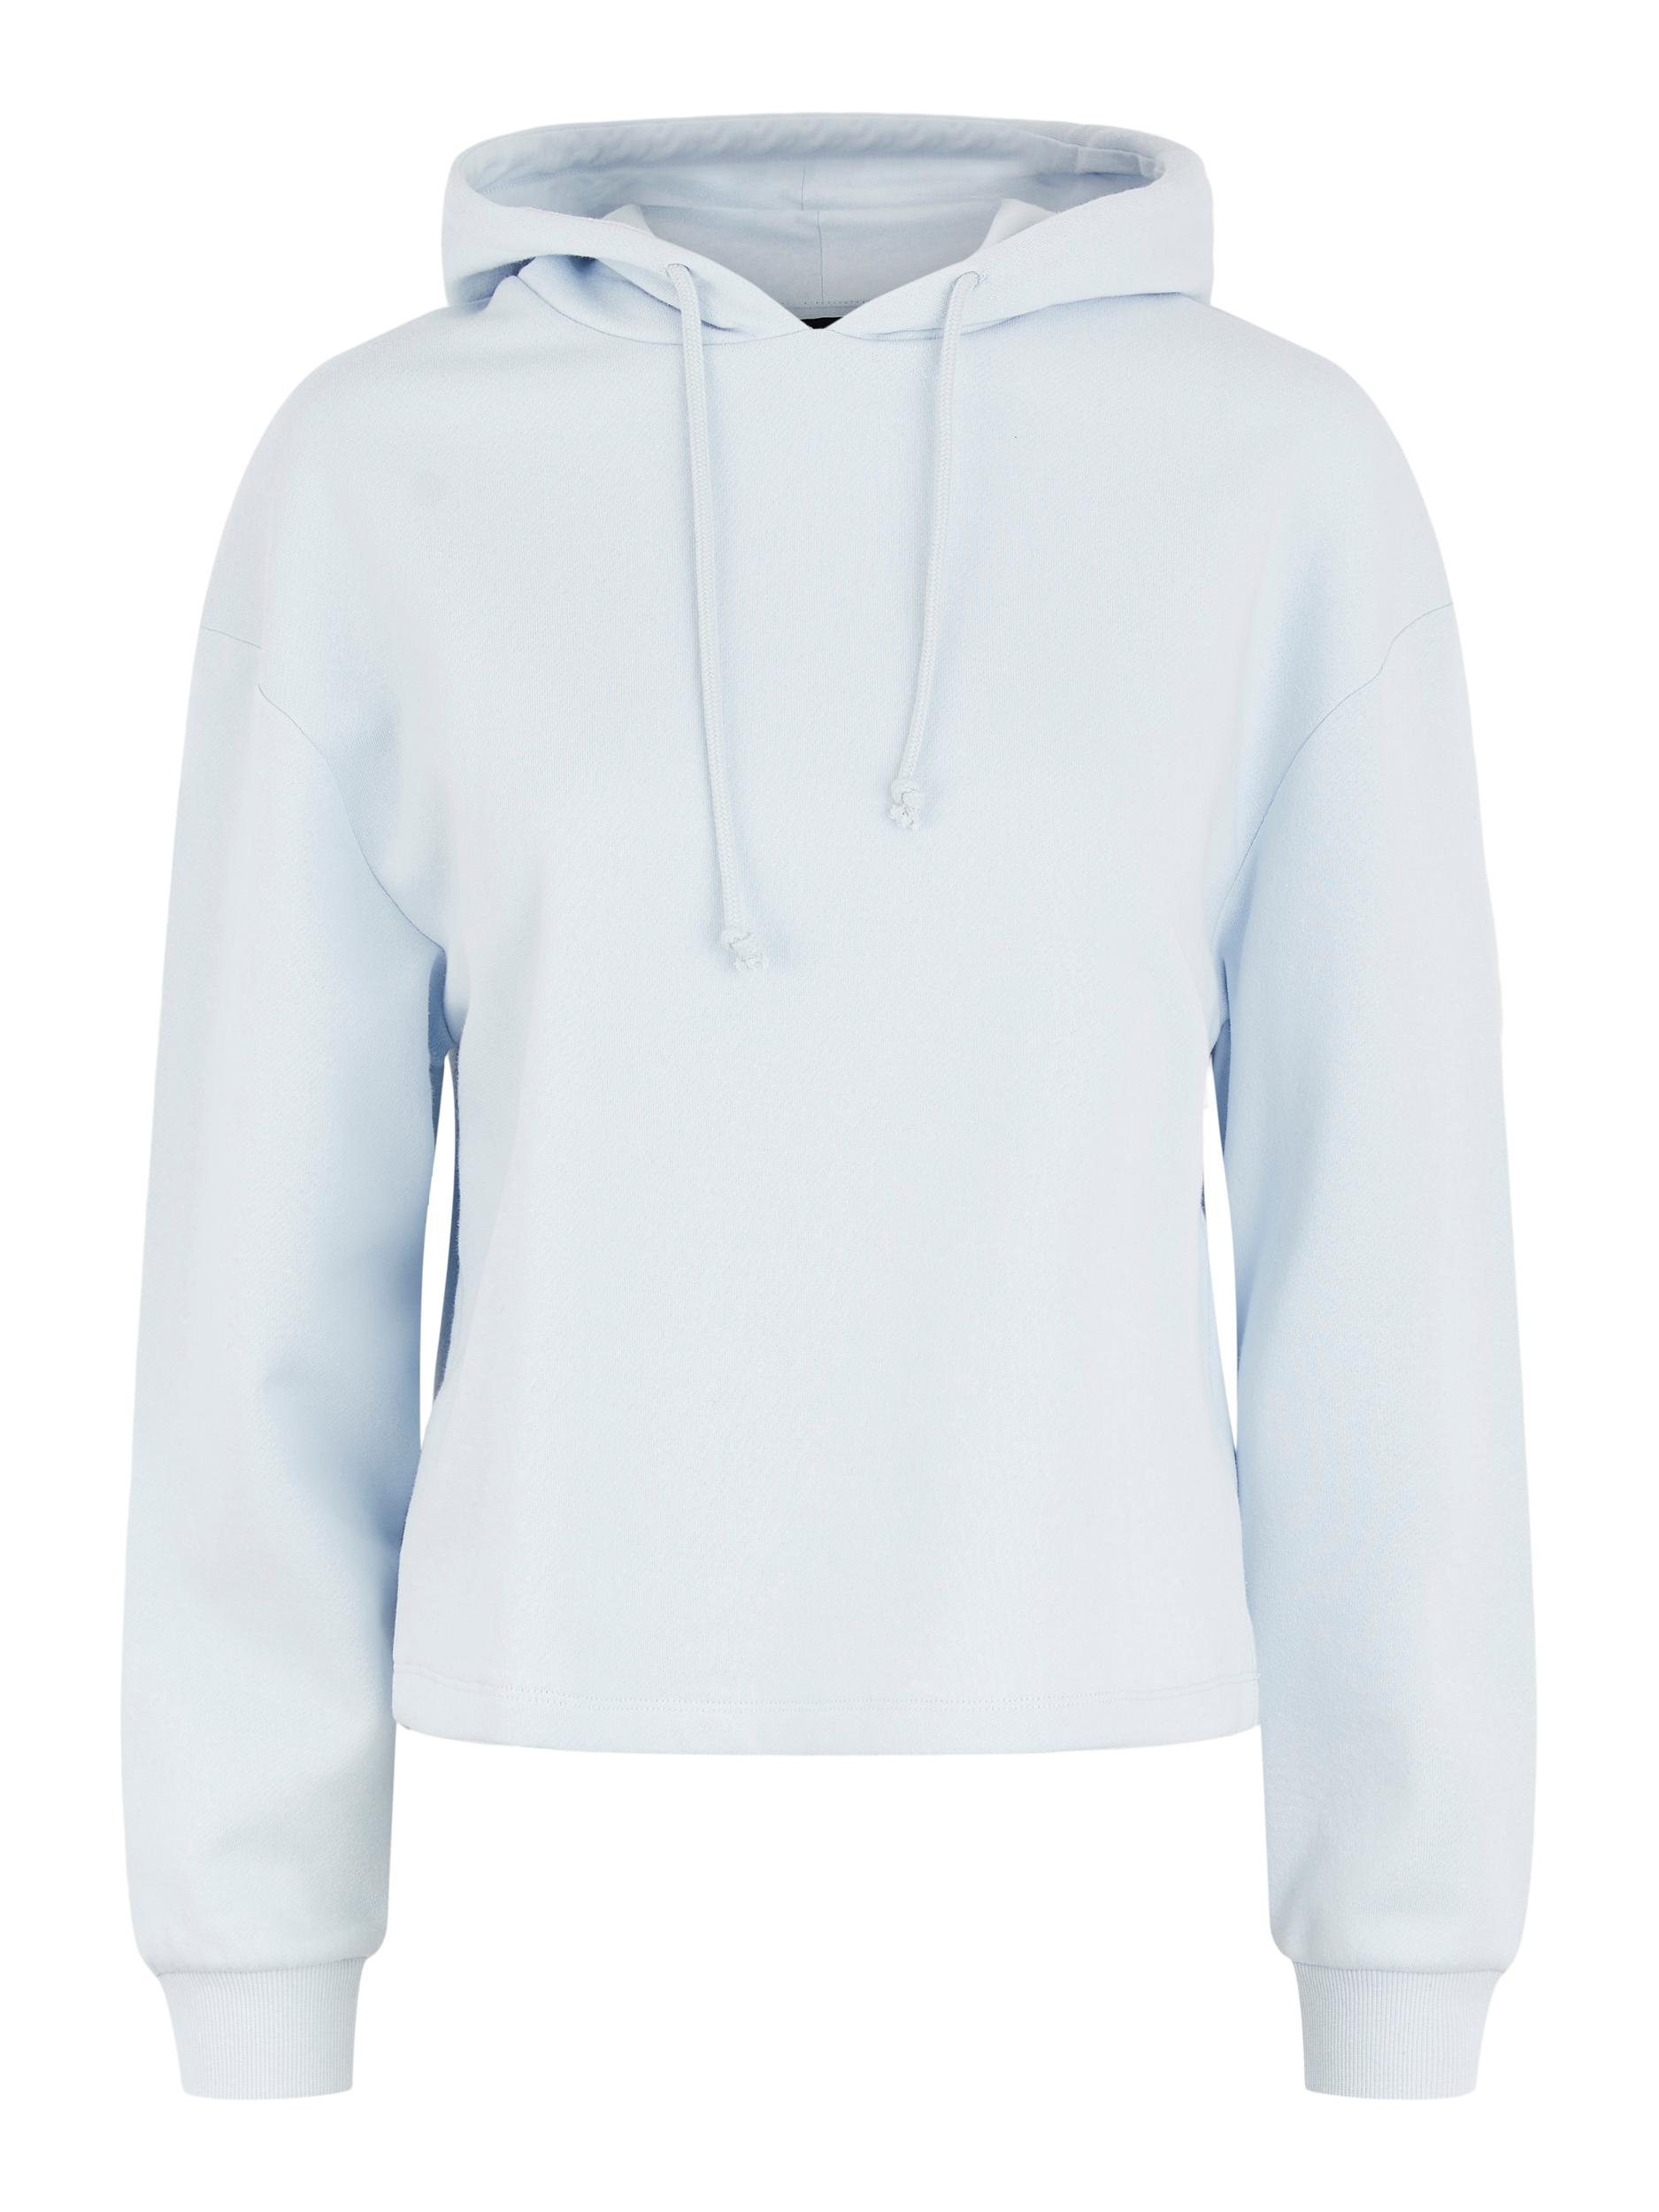 Pieces Hoodie Chilli in 2 Farben